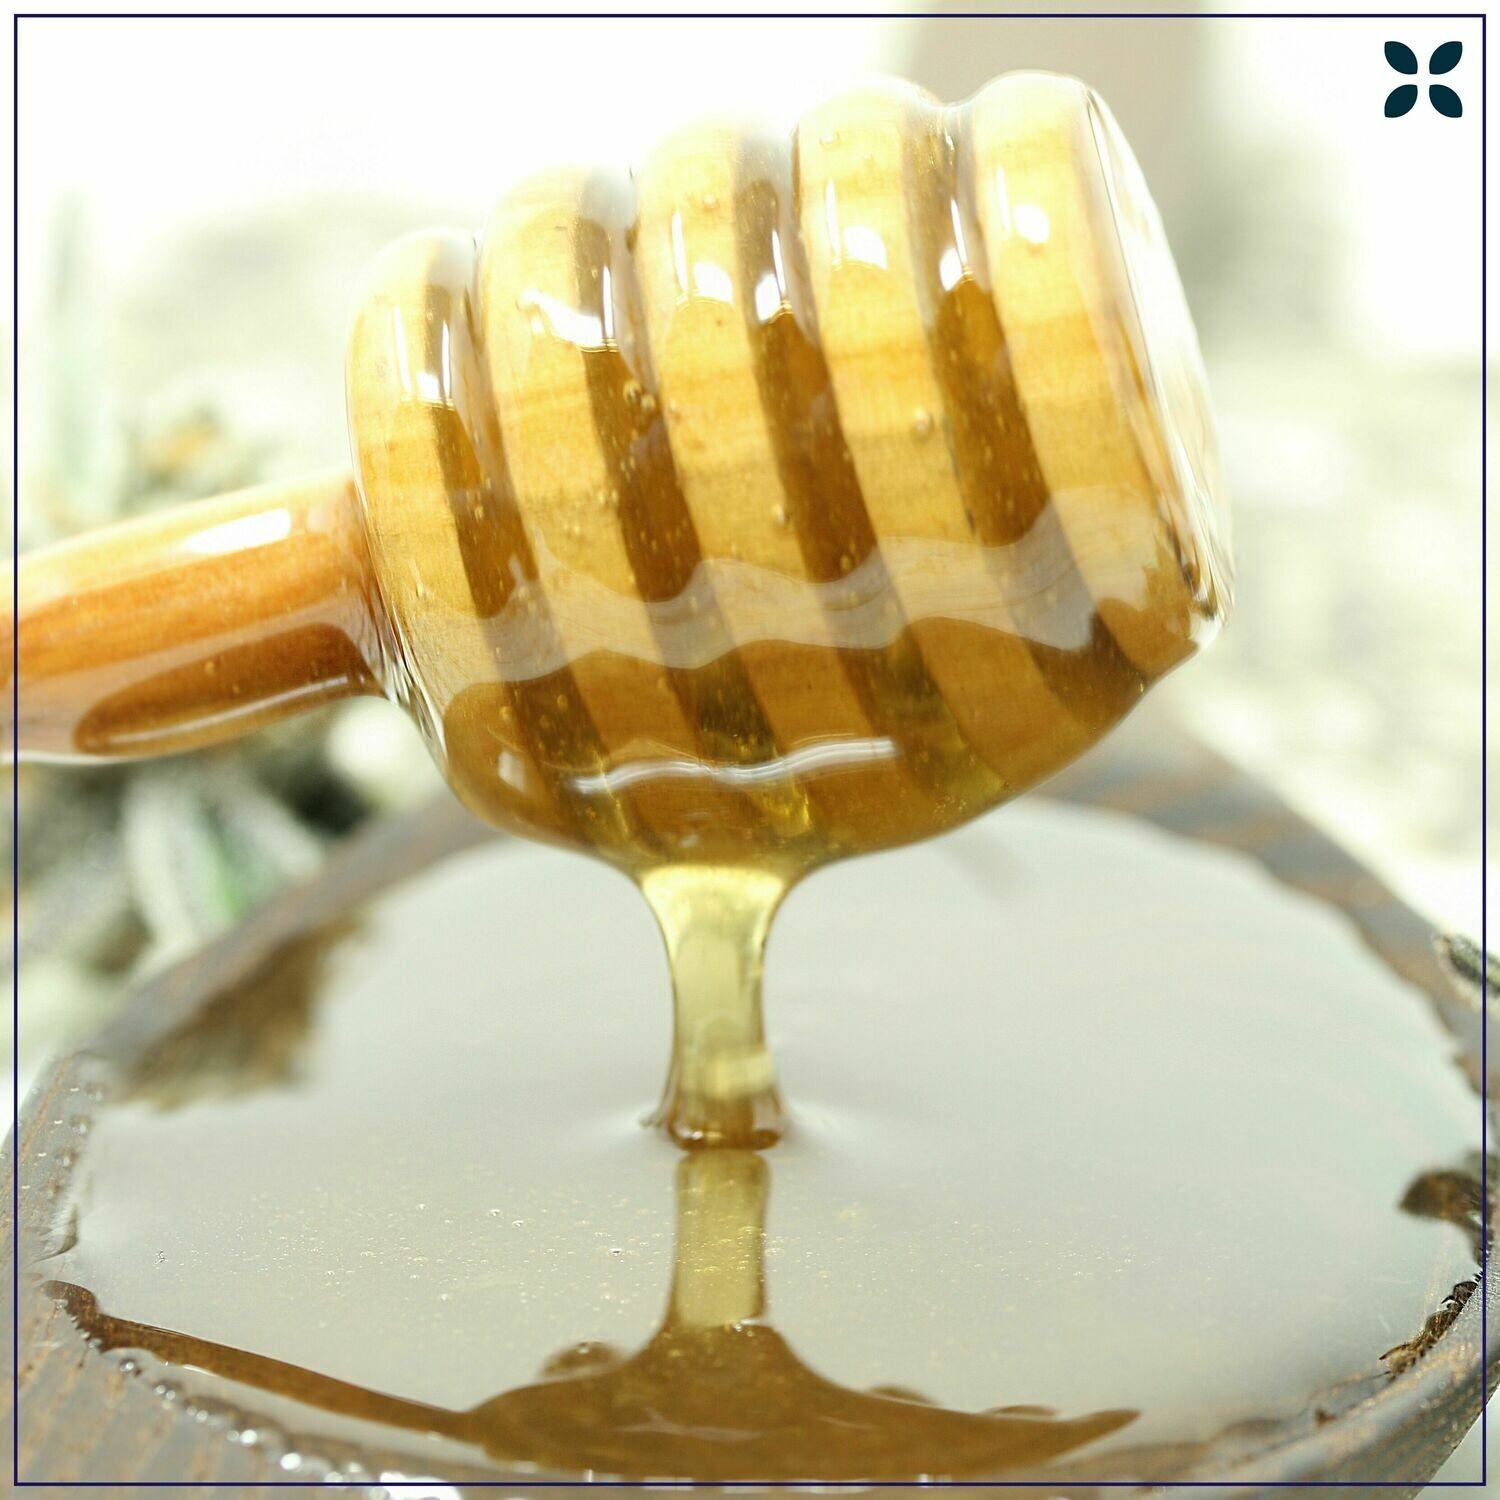 Sativum Honey NDC: 8660  (25.6 mg THC/Tbsp)(AGL)